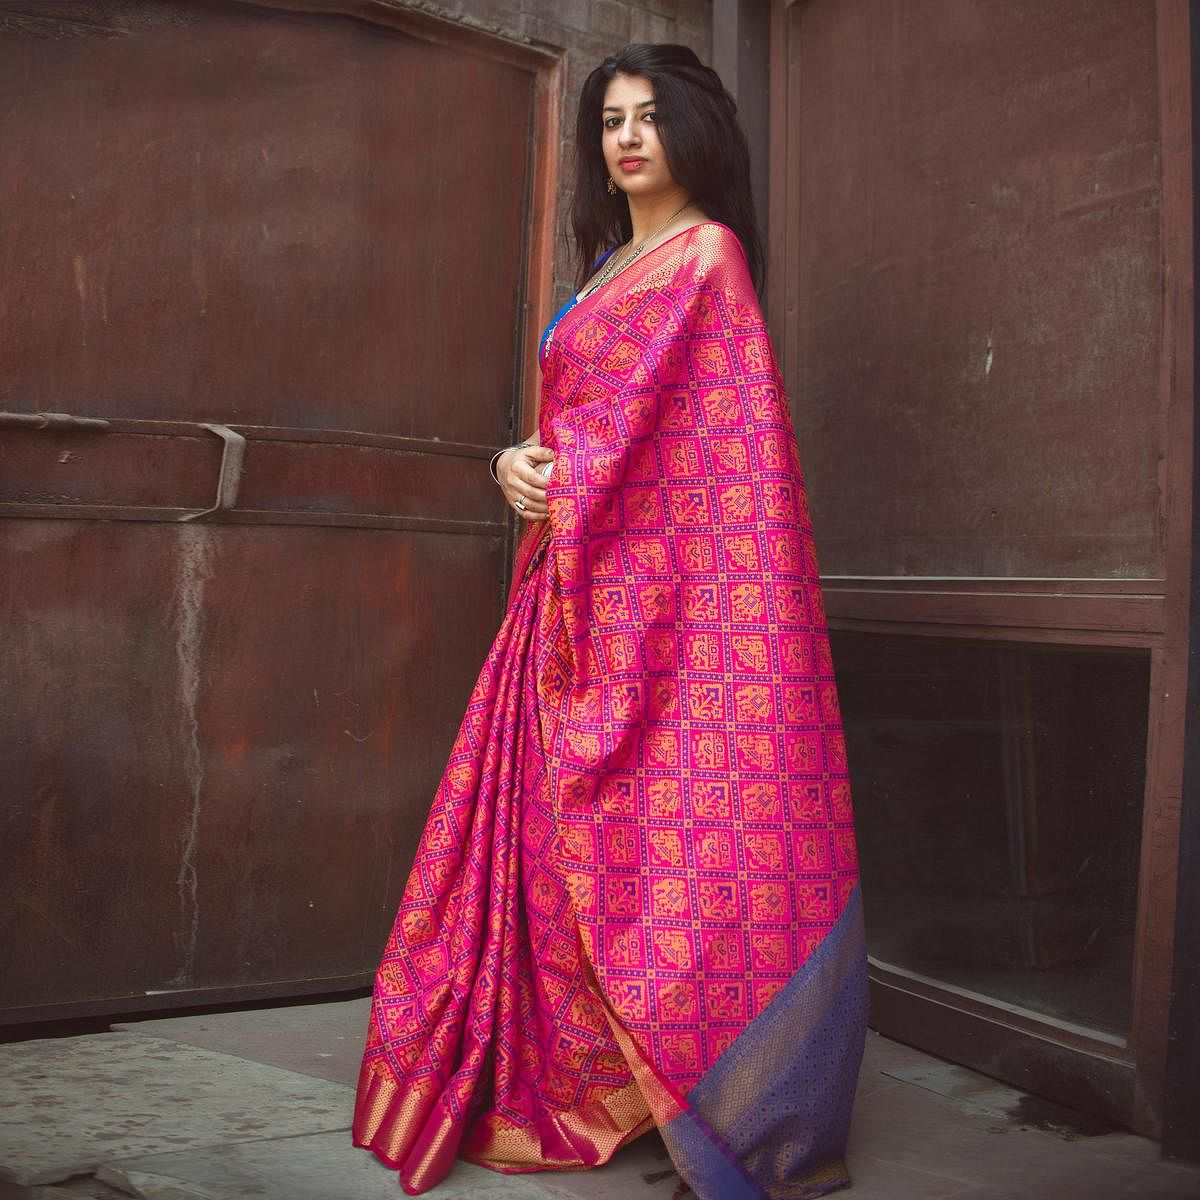 032e6412b1 Buy Rani Pink Colored Festive Wear Patola Silk Saree Online India, Best  Prices, Reviews - Peachmode